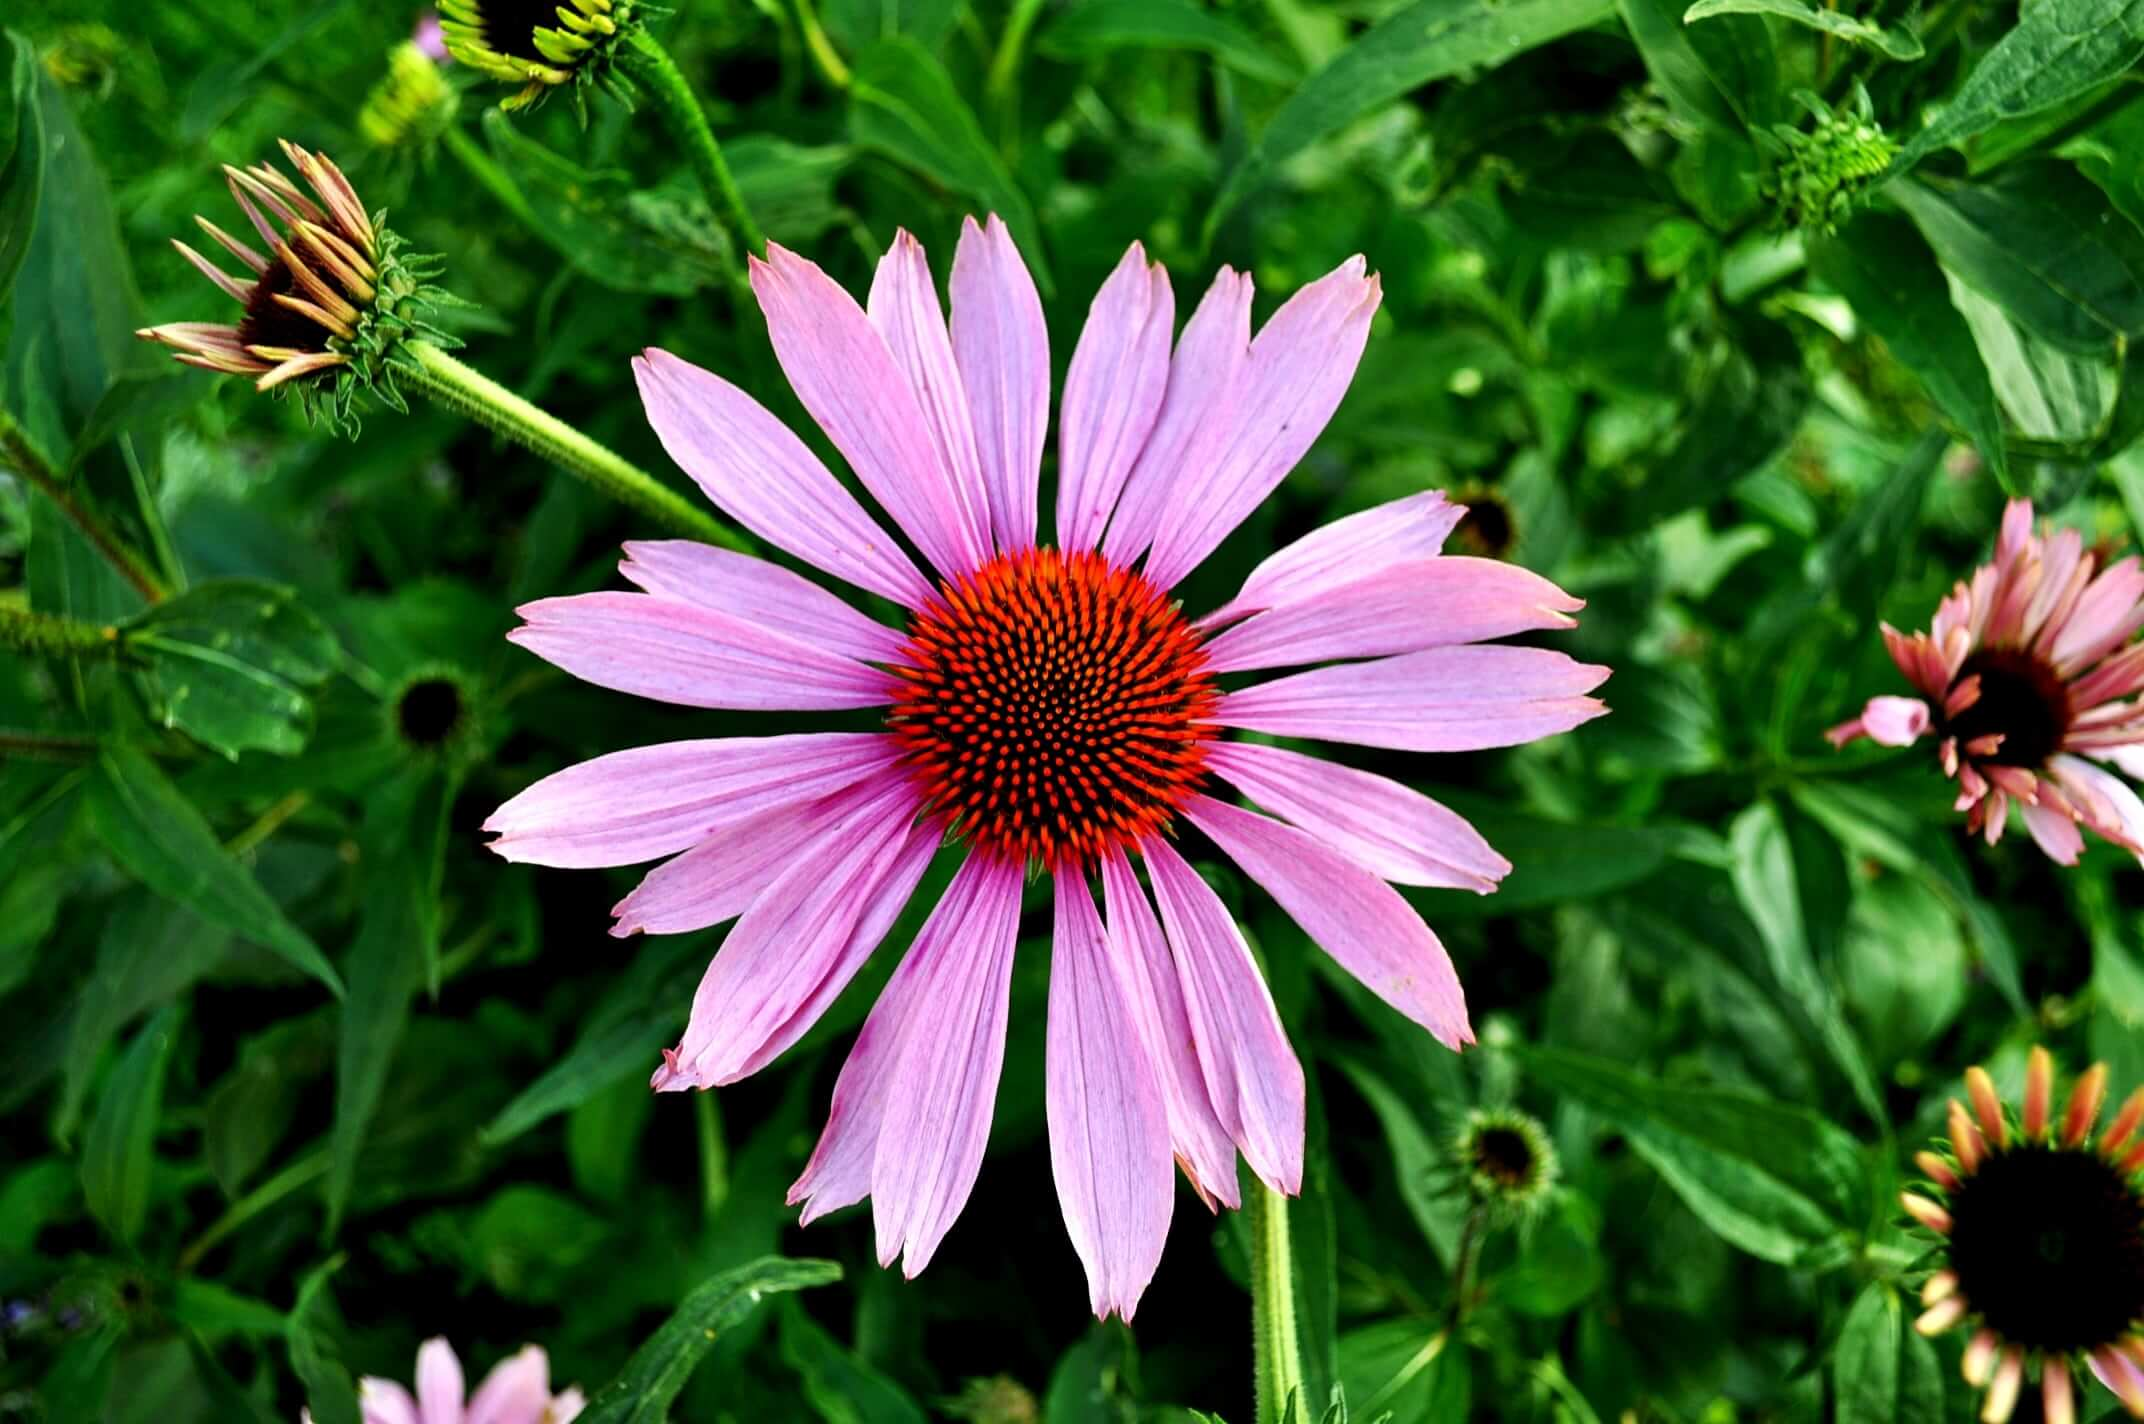 Bright pink echinacea flower